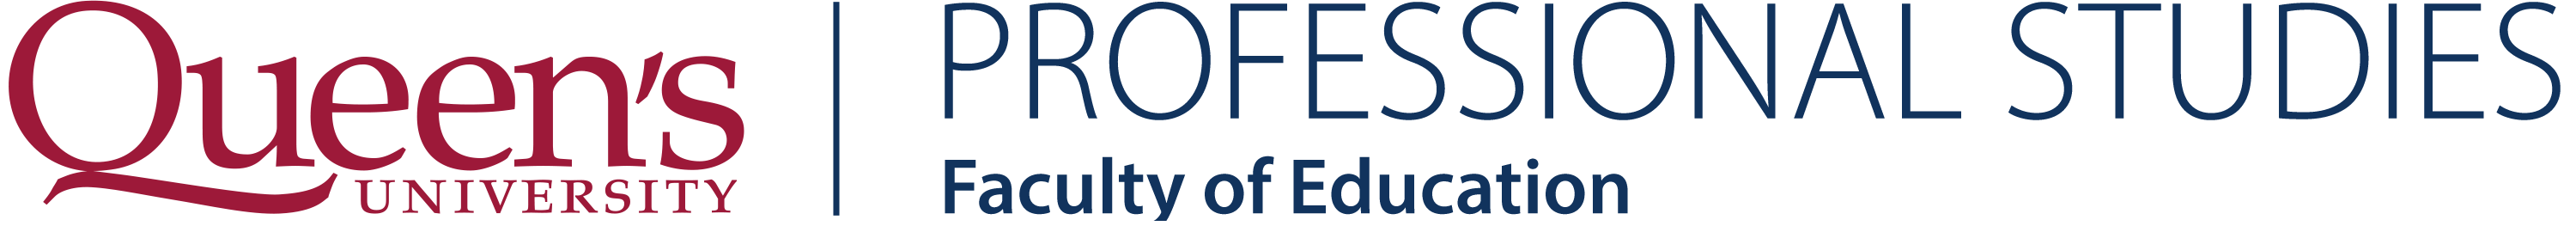 Queen's University Faculty of Education, Professional Studies